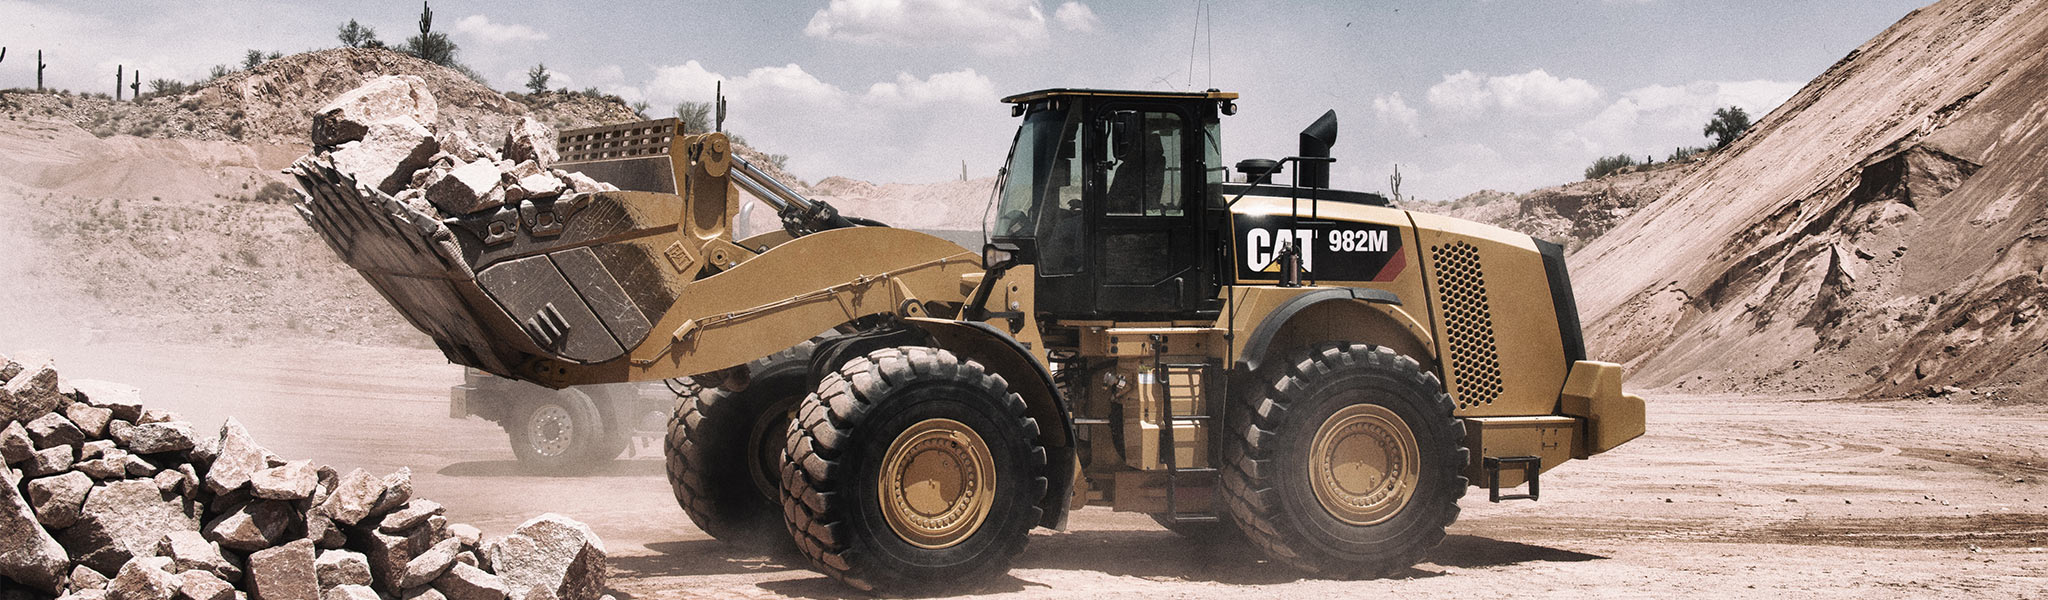 Mining Loader Operator Loretta Mine site Mount Isa QLD-iMINCO.net Mining Information